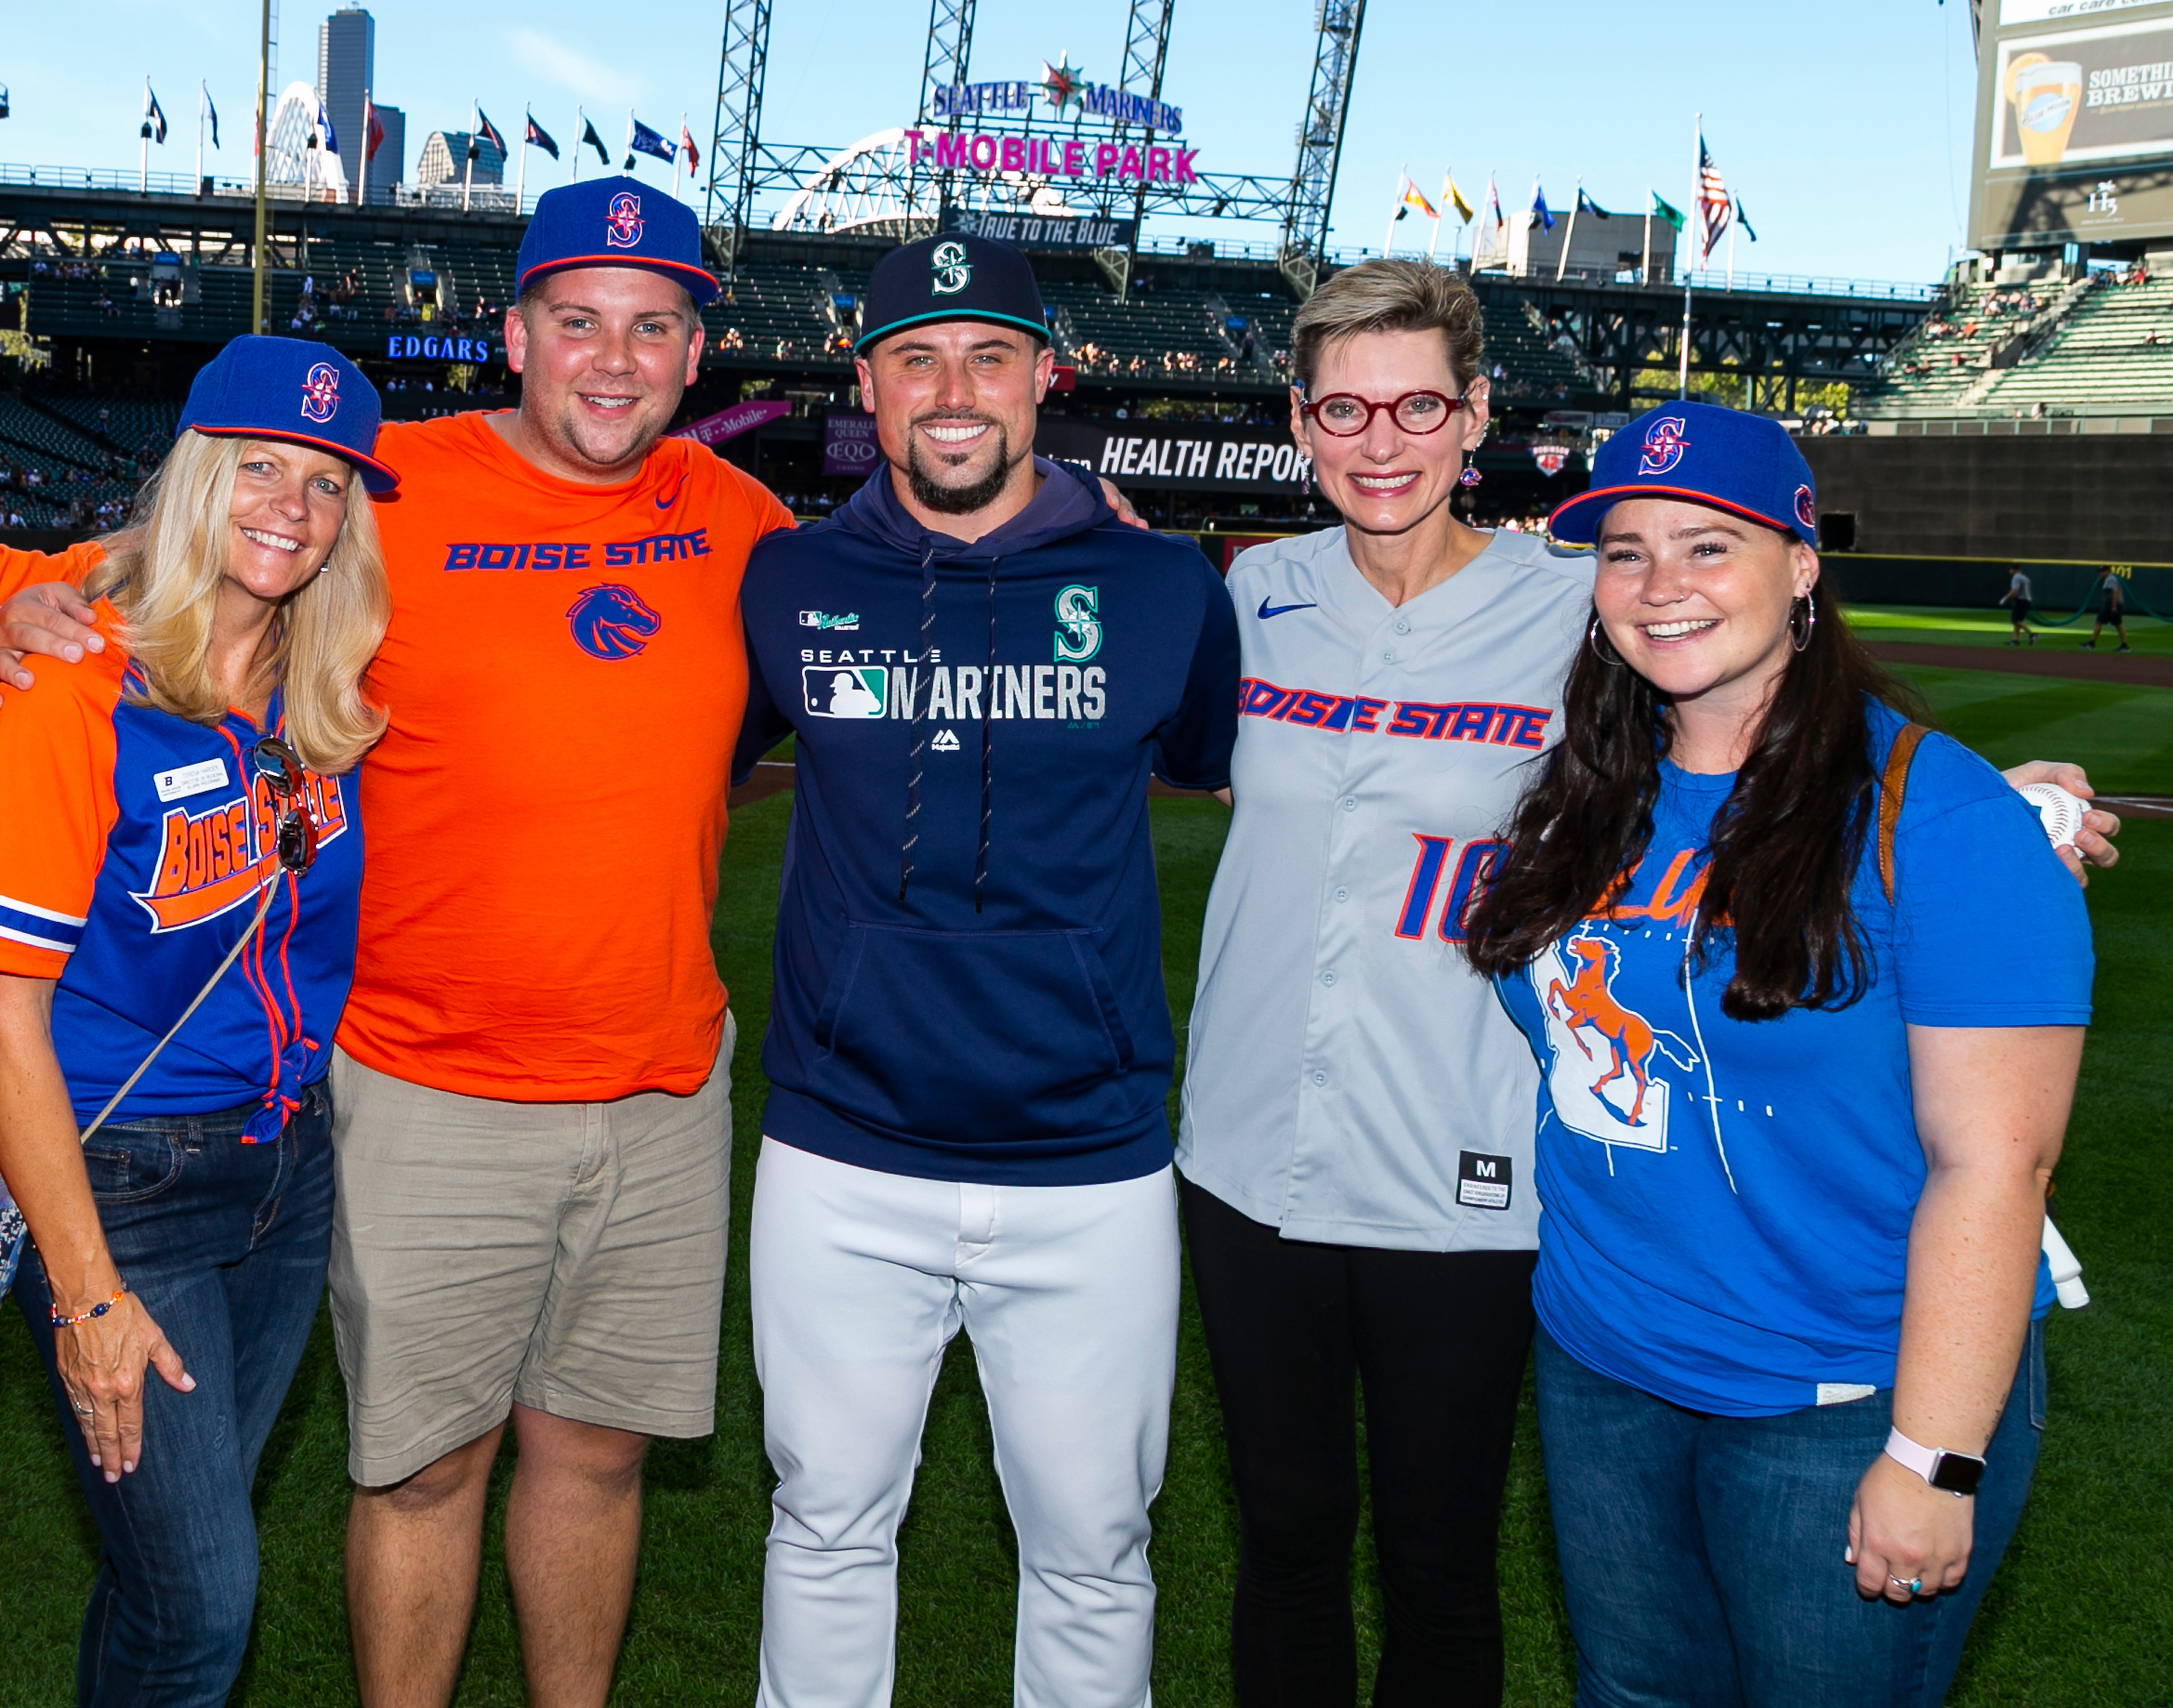 Dr. Tromp and fans at the Seattle Mariners